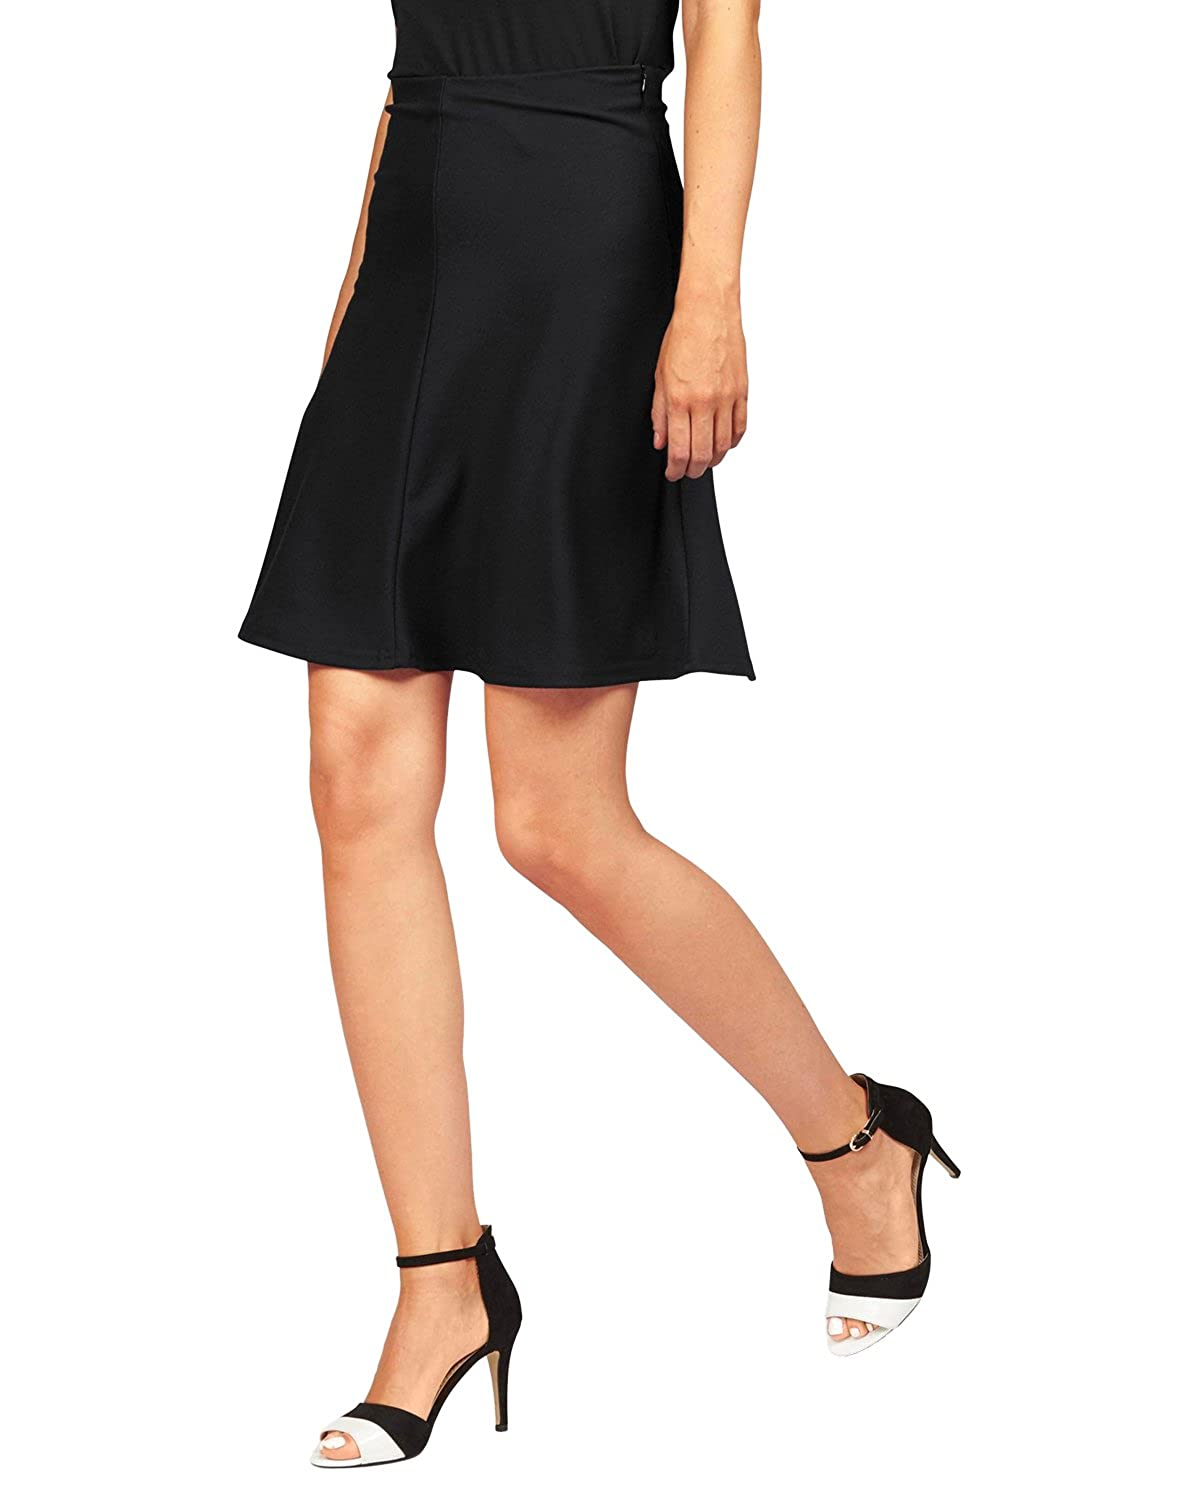 superior quality nice cheap 60% clearance KENANCY Women's Retro A-line Skirts Work Office Business ...